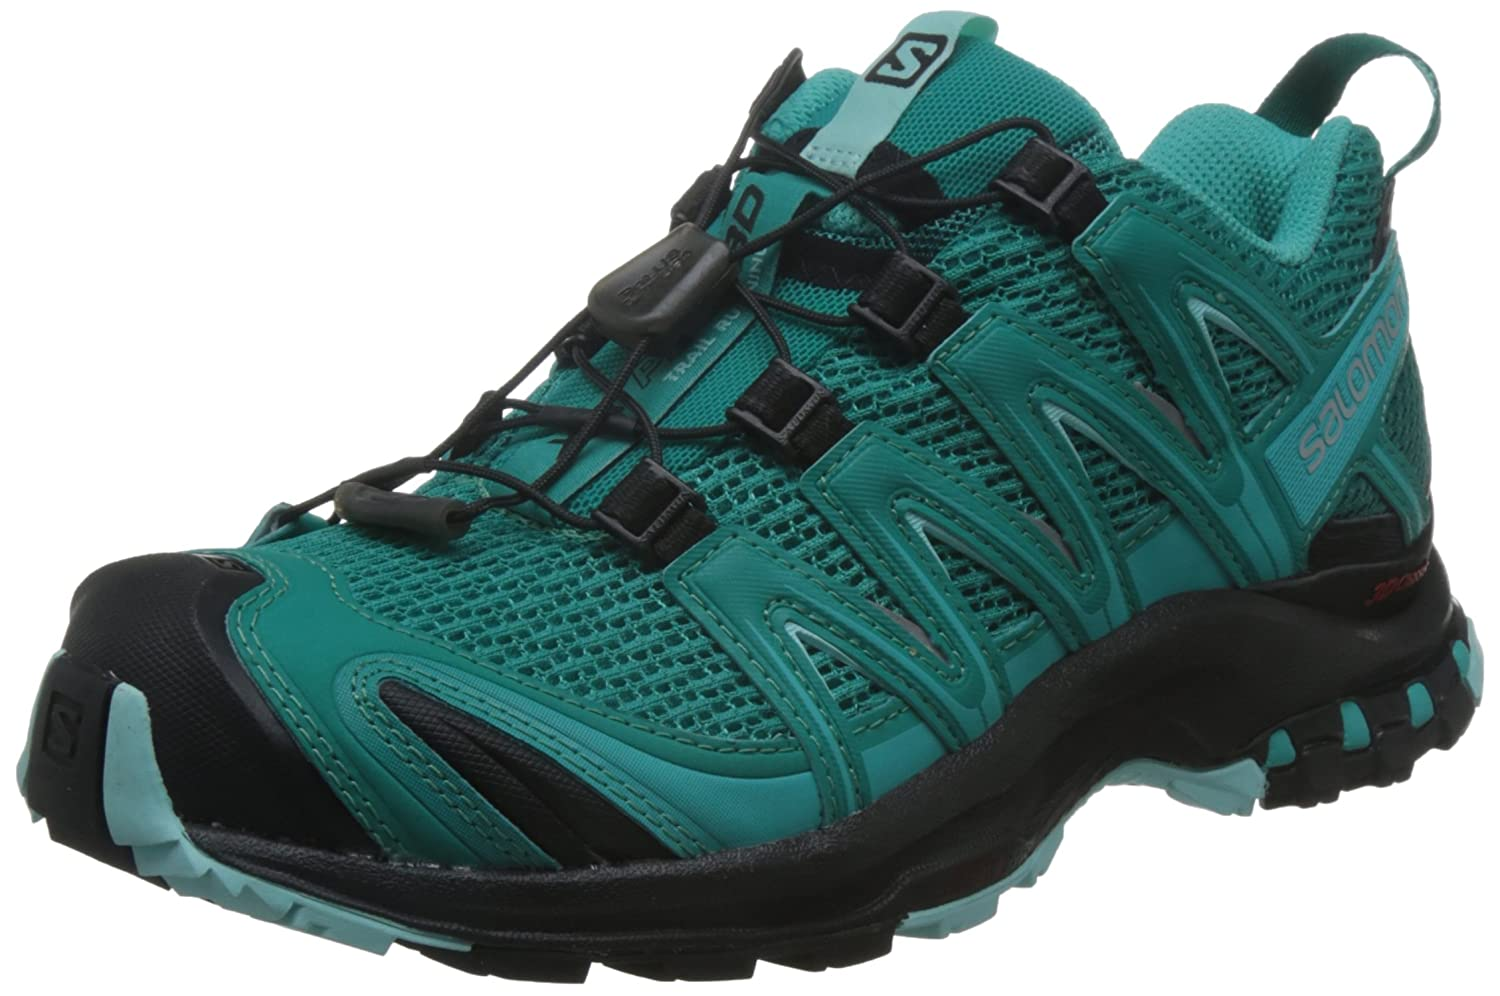 Salomon Mujer Zapatillas de Running y Trail Running XA Pro 3D 41 1/3 EU|Azul (Deep Peacock Blue/Black/Aruba Blue)